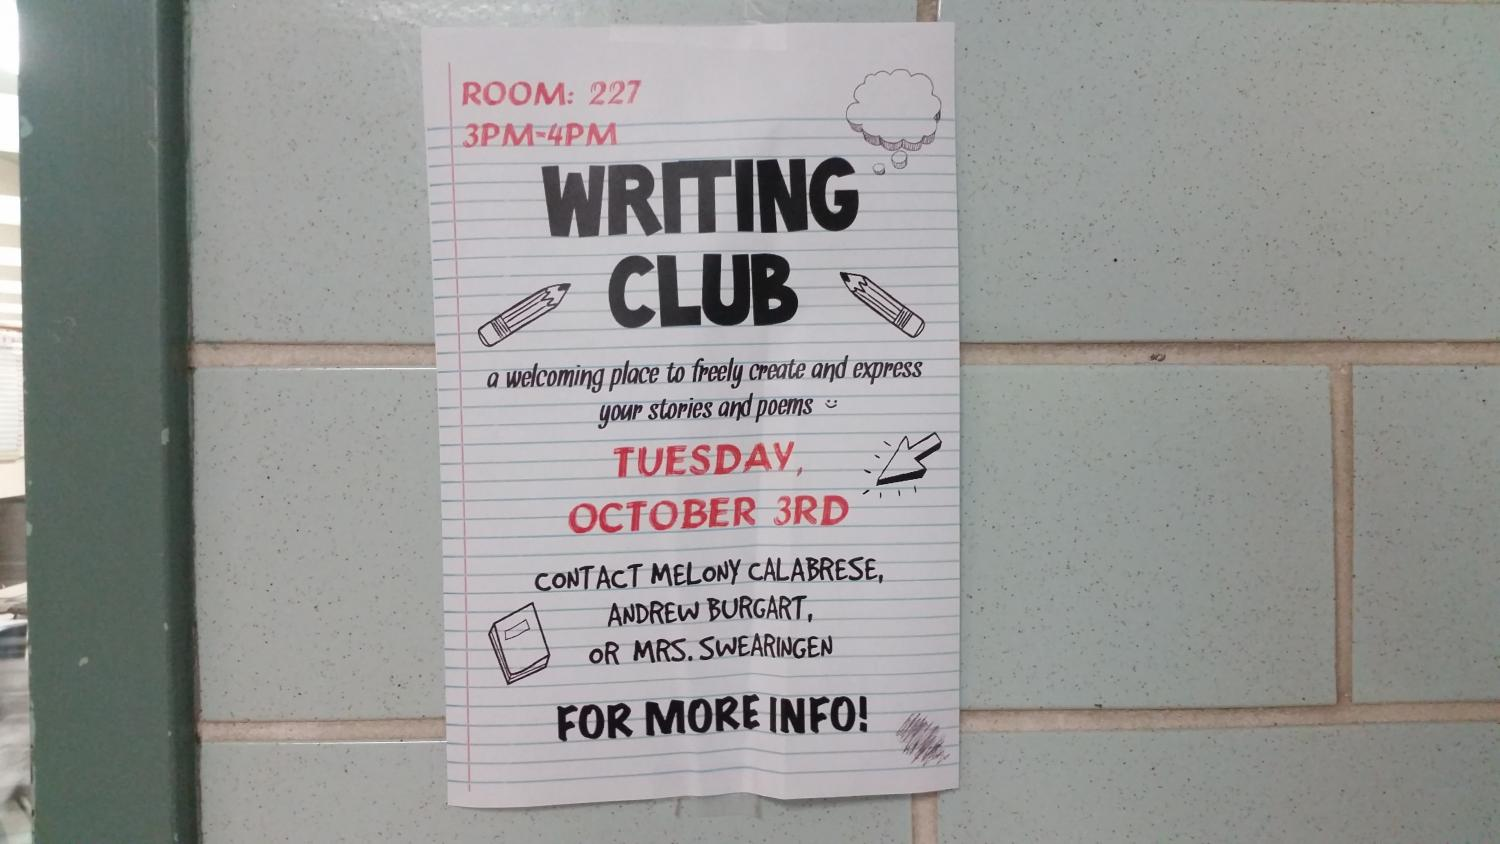 Writing Club poster outside room 227 showing dates and more information